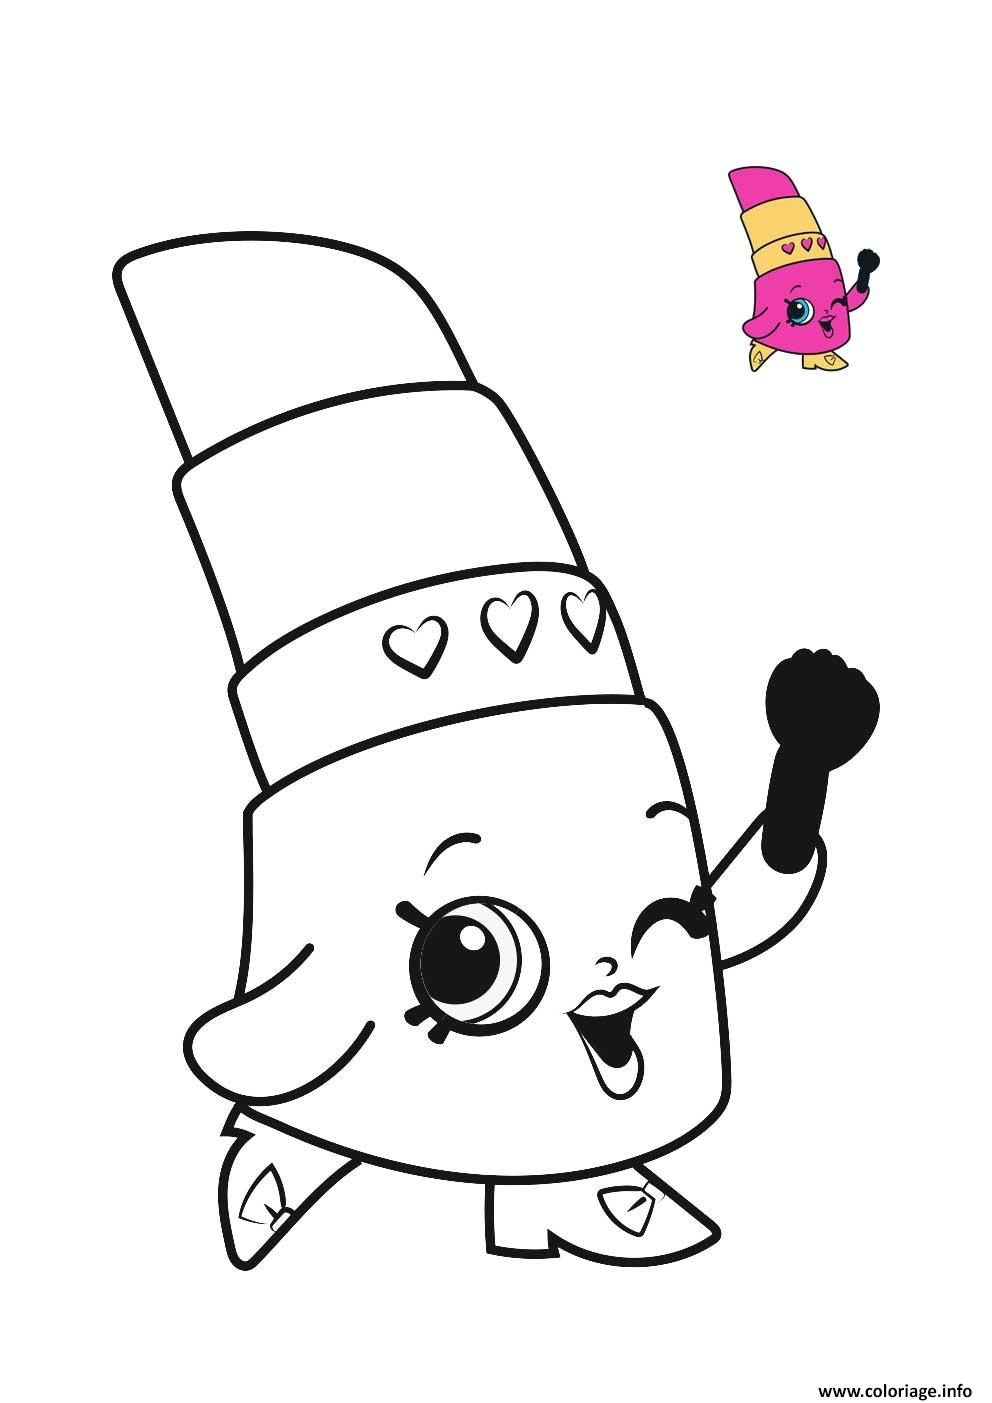 Coloriage shopkins lipstick wink for Lipstick shopkins coloring page